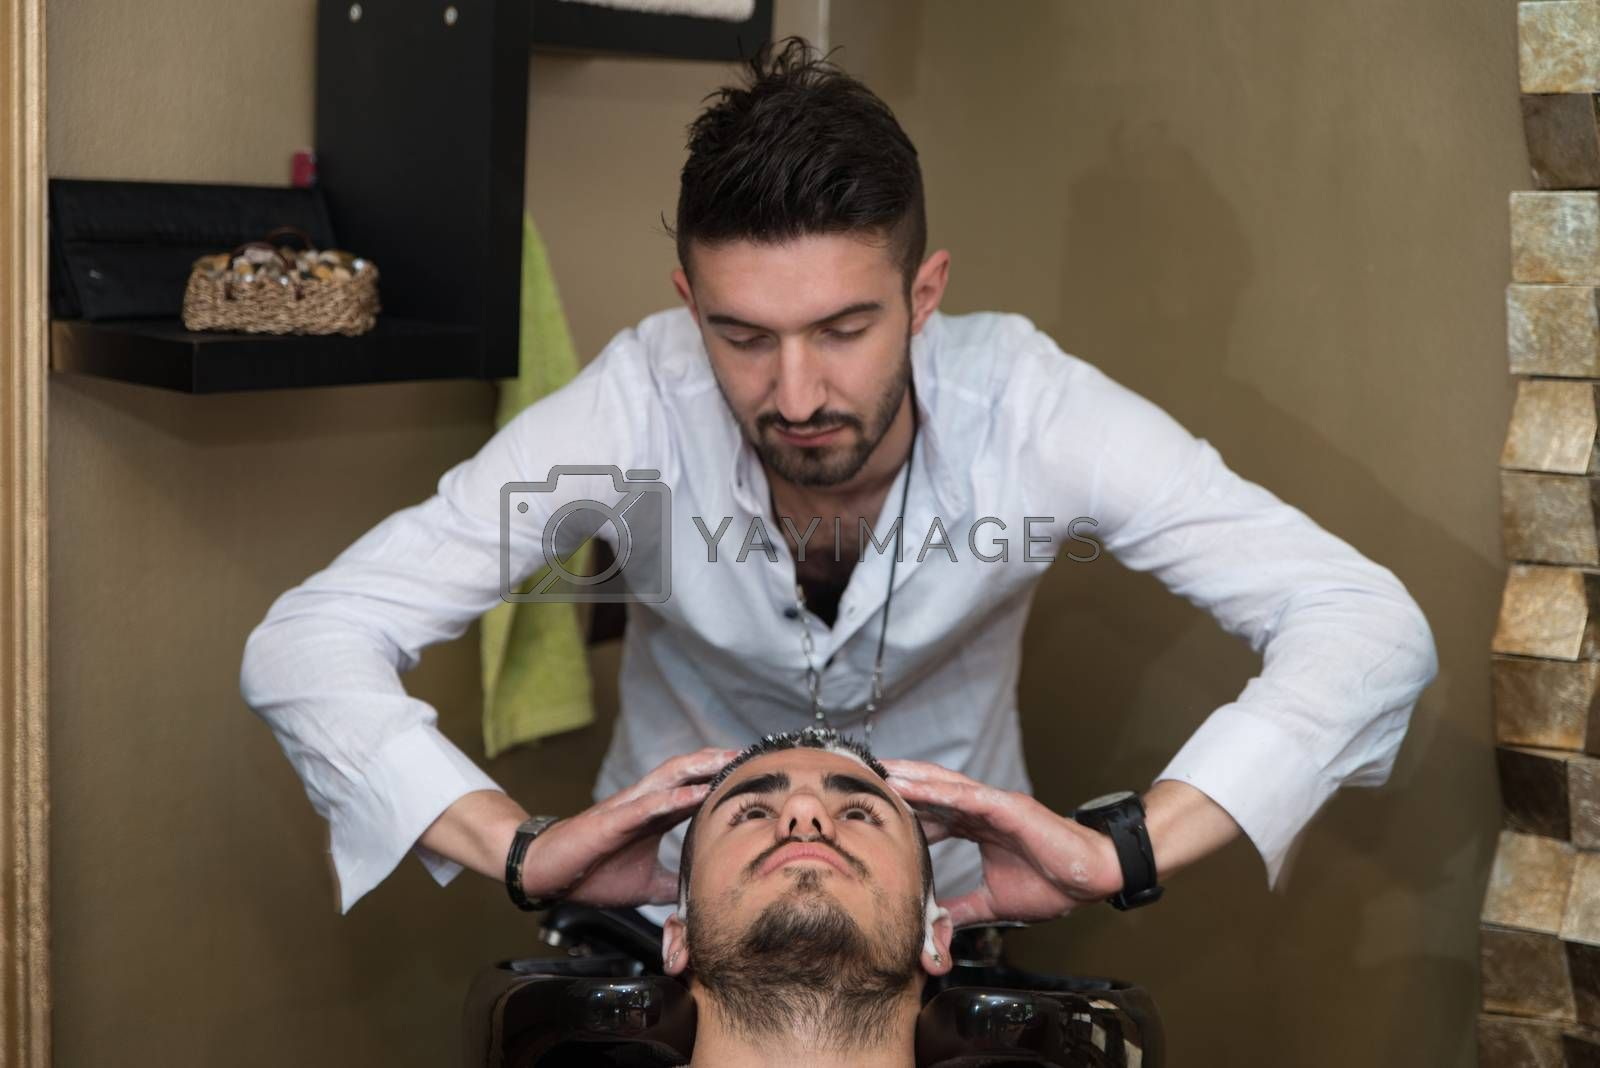 Hairstylist Hairdresser Washing Customer Hair - Young Man Relaxing In Hairdressing Beauty Salon